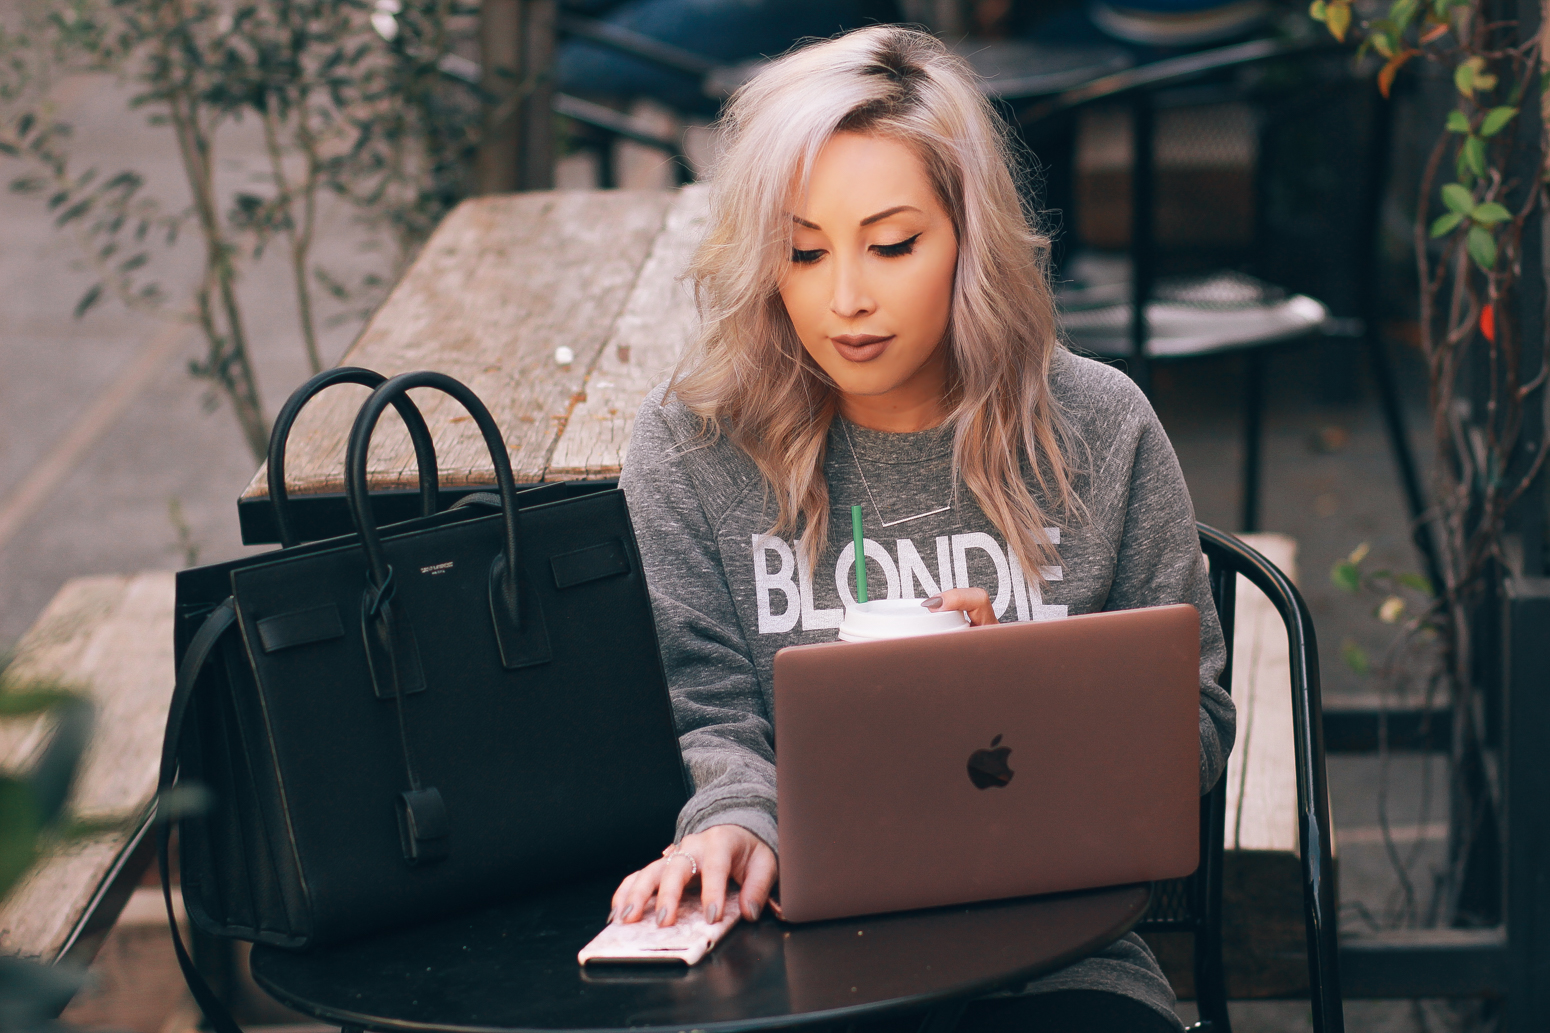 Blondie in the City | The Top 8 iPhone Apps Every Social Girl Needs